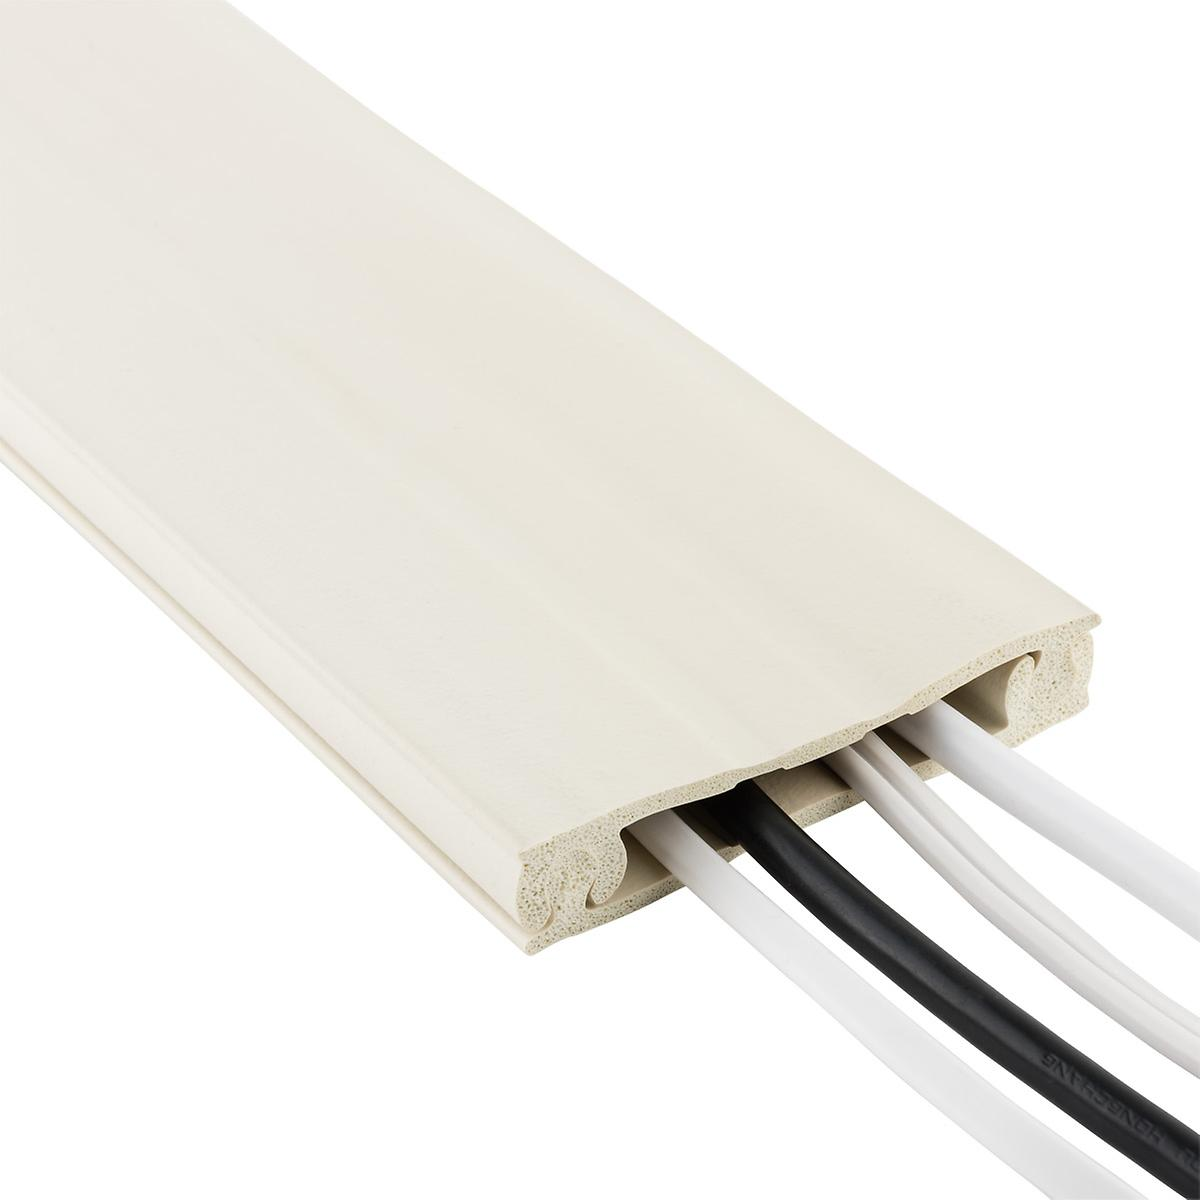 8' Paintable Cordline Wall Cable Channel